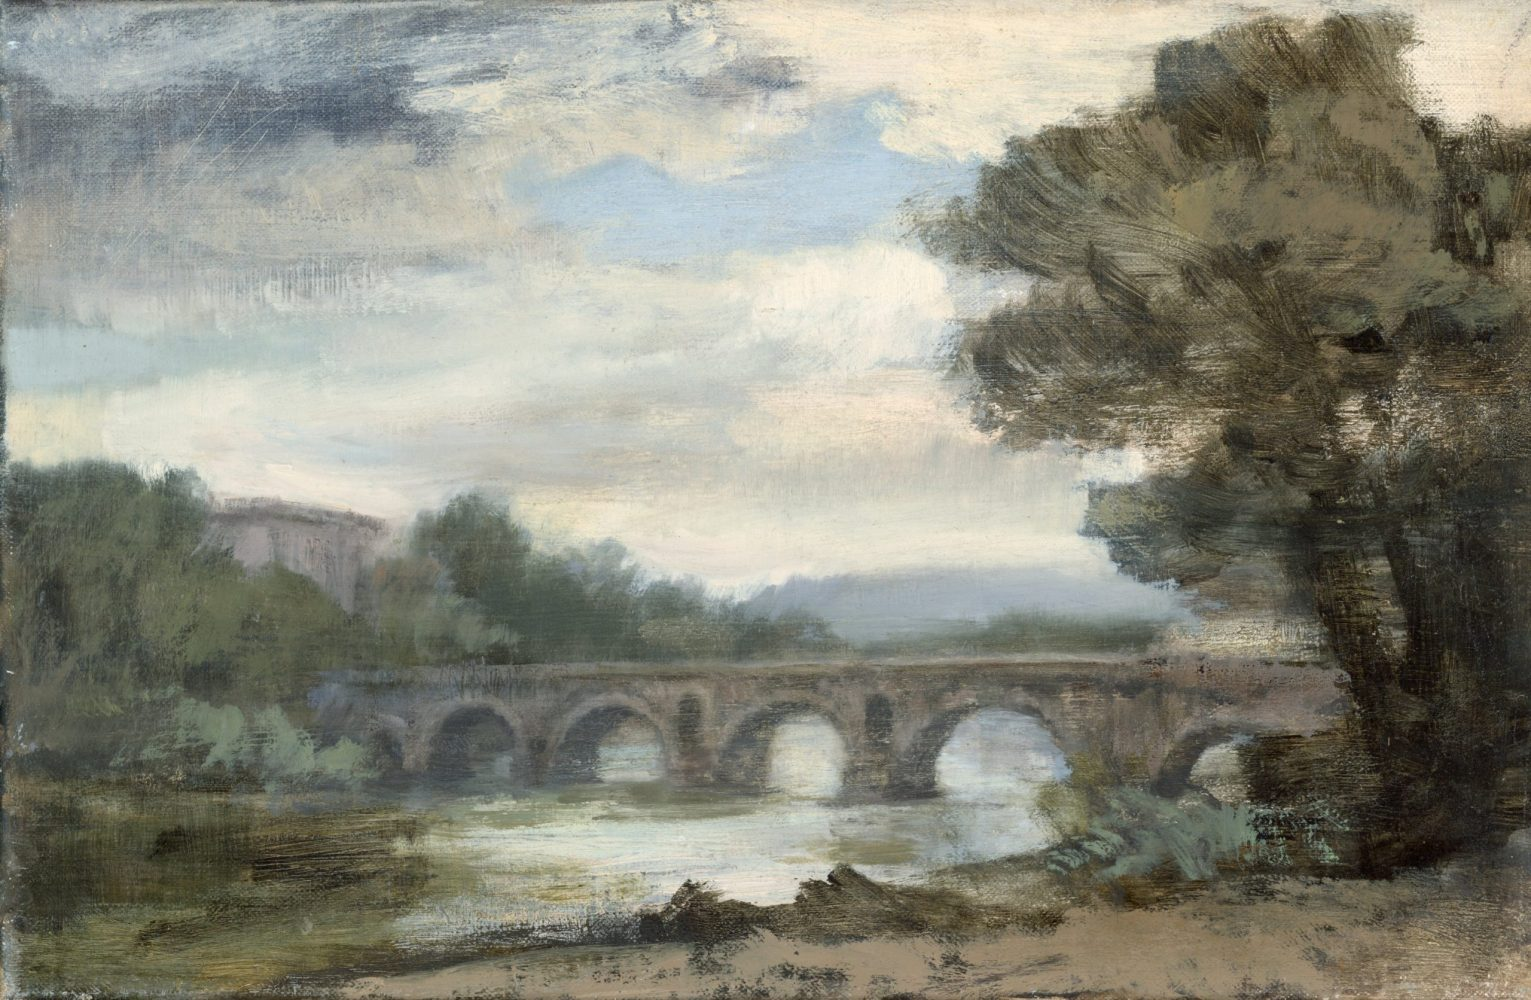 Ponte Molle from the right bank of the Tiber